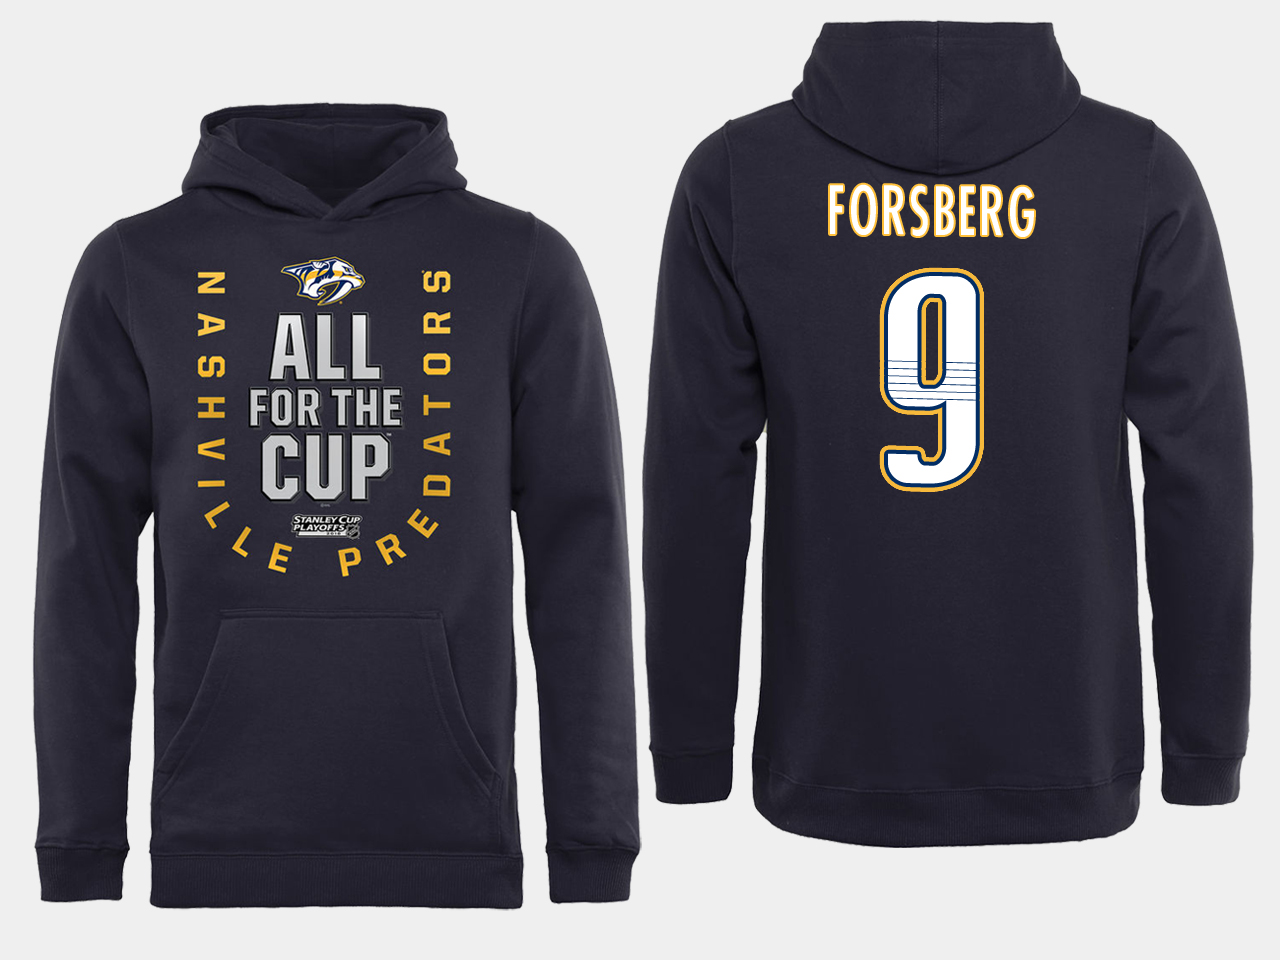 Men NHL Adidas Nashville Predators 9 Forsberg black ALL for the Cup hoodie